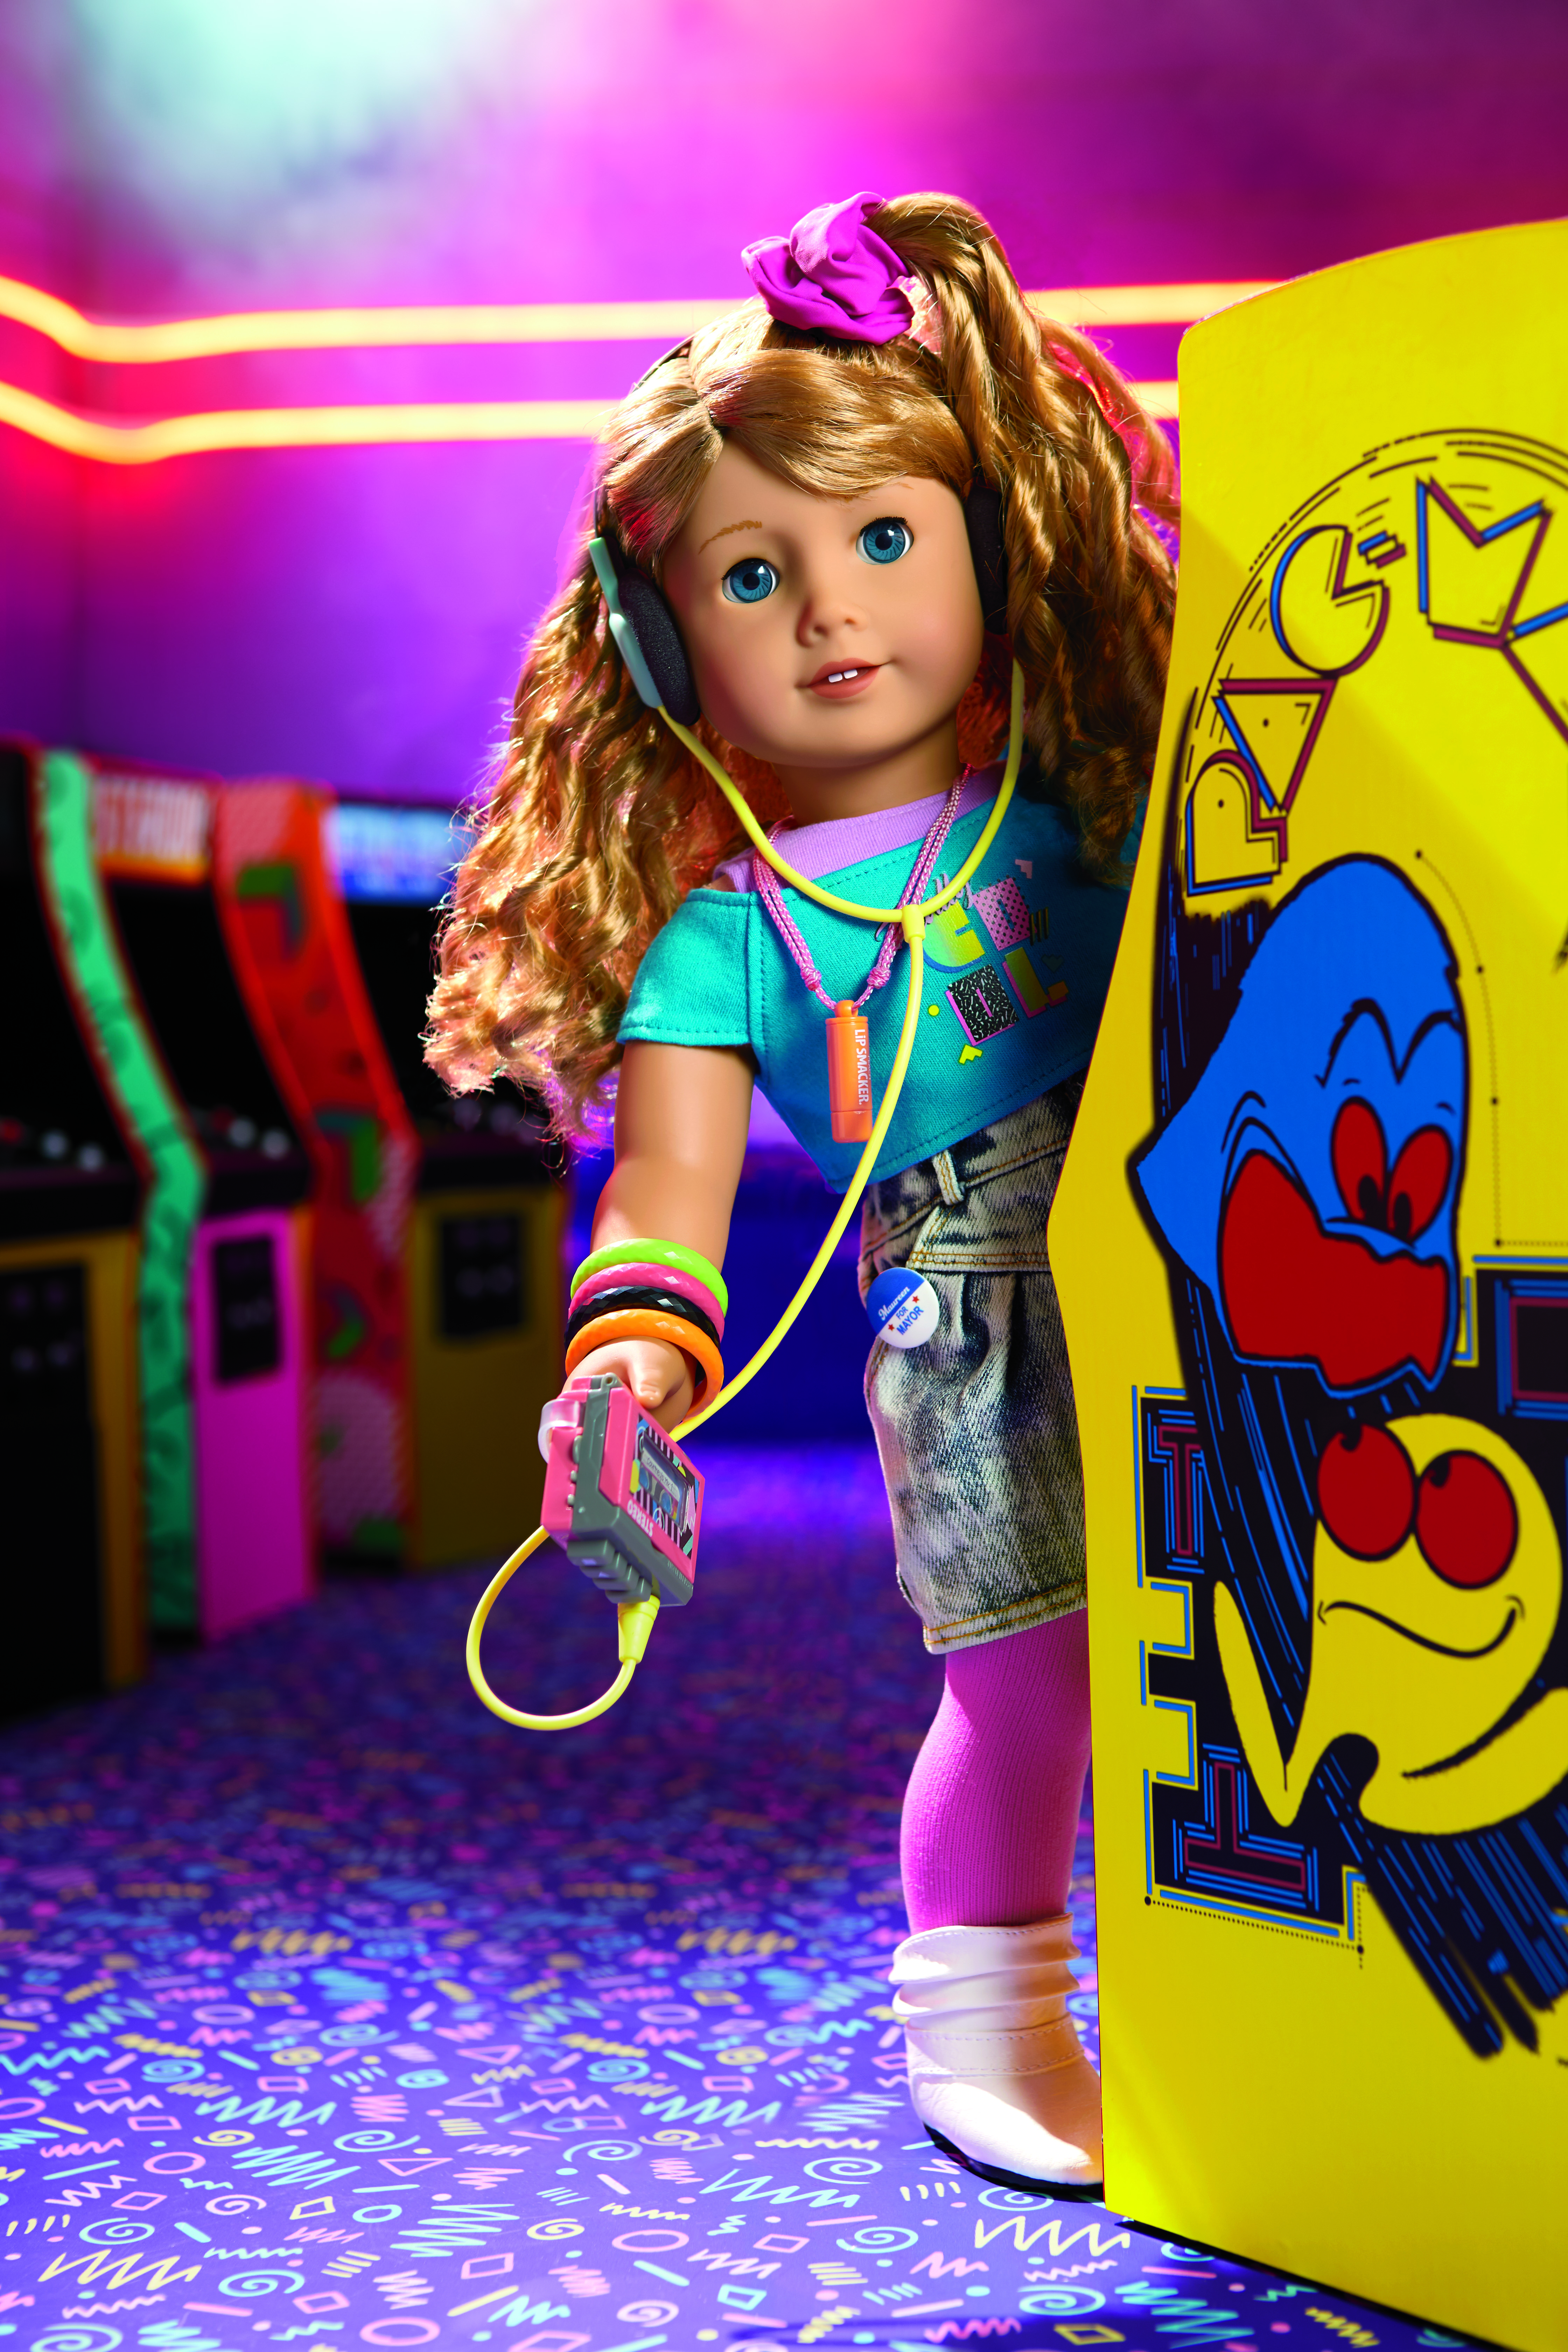 This 1980's American Girl Doll Courtney Moore Brings Back Comforting Childhood Memories